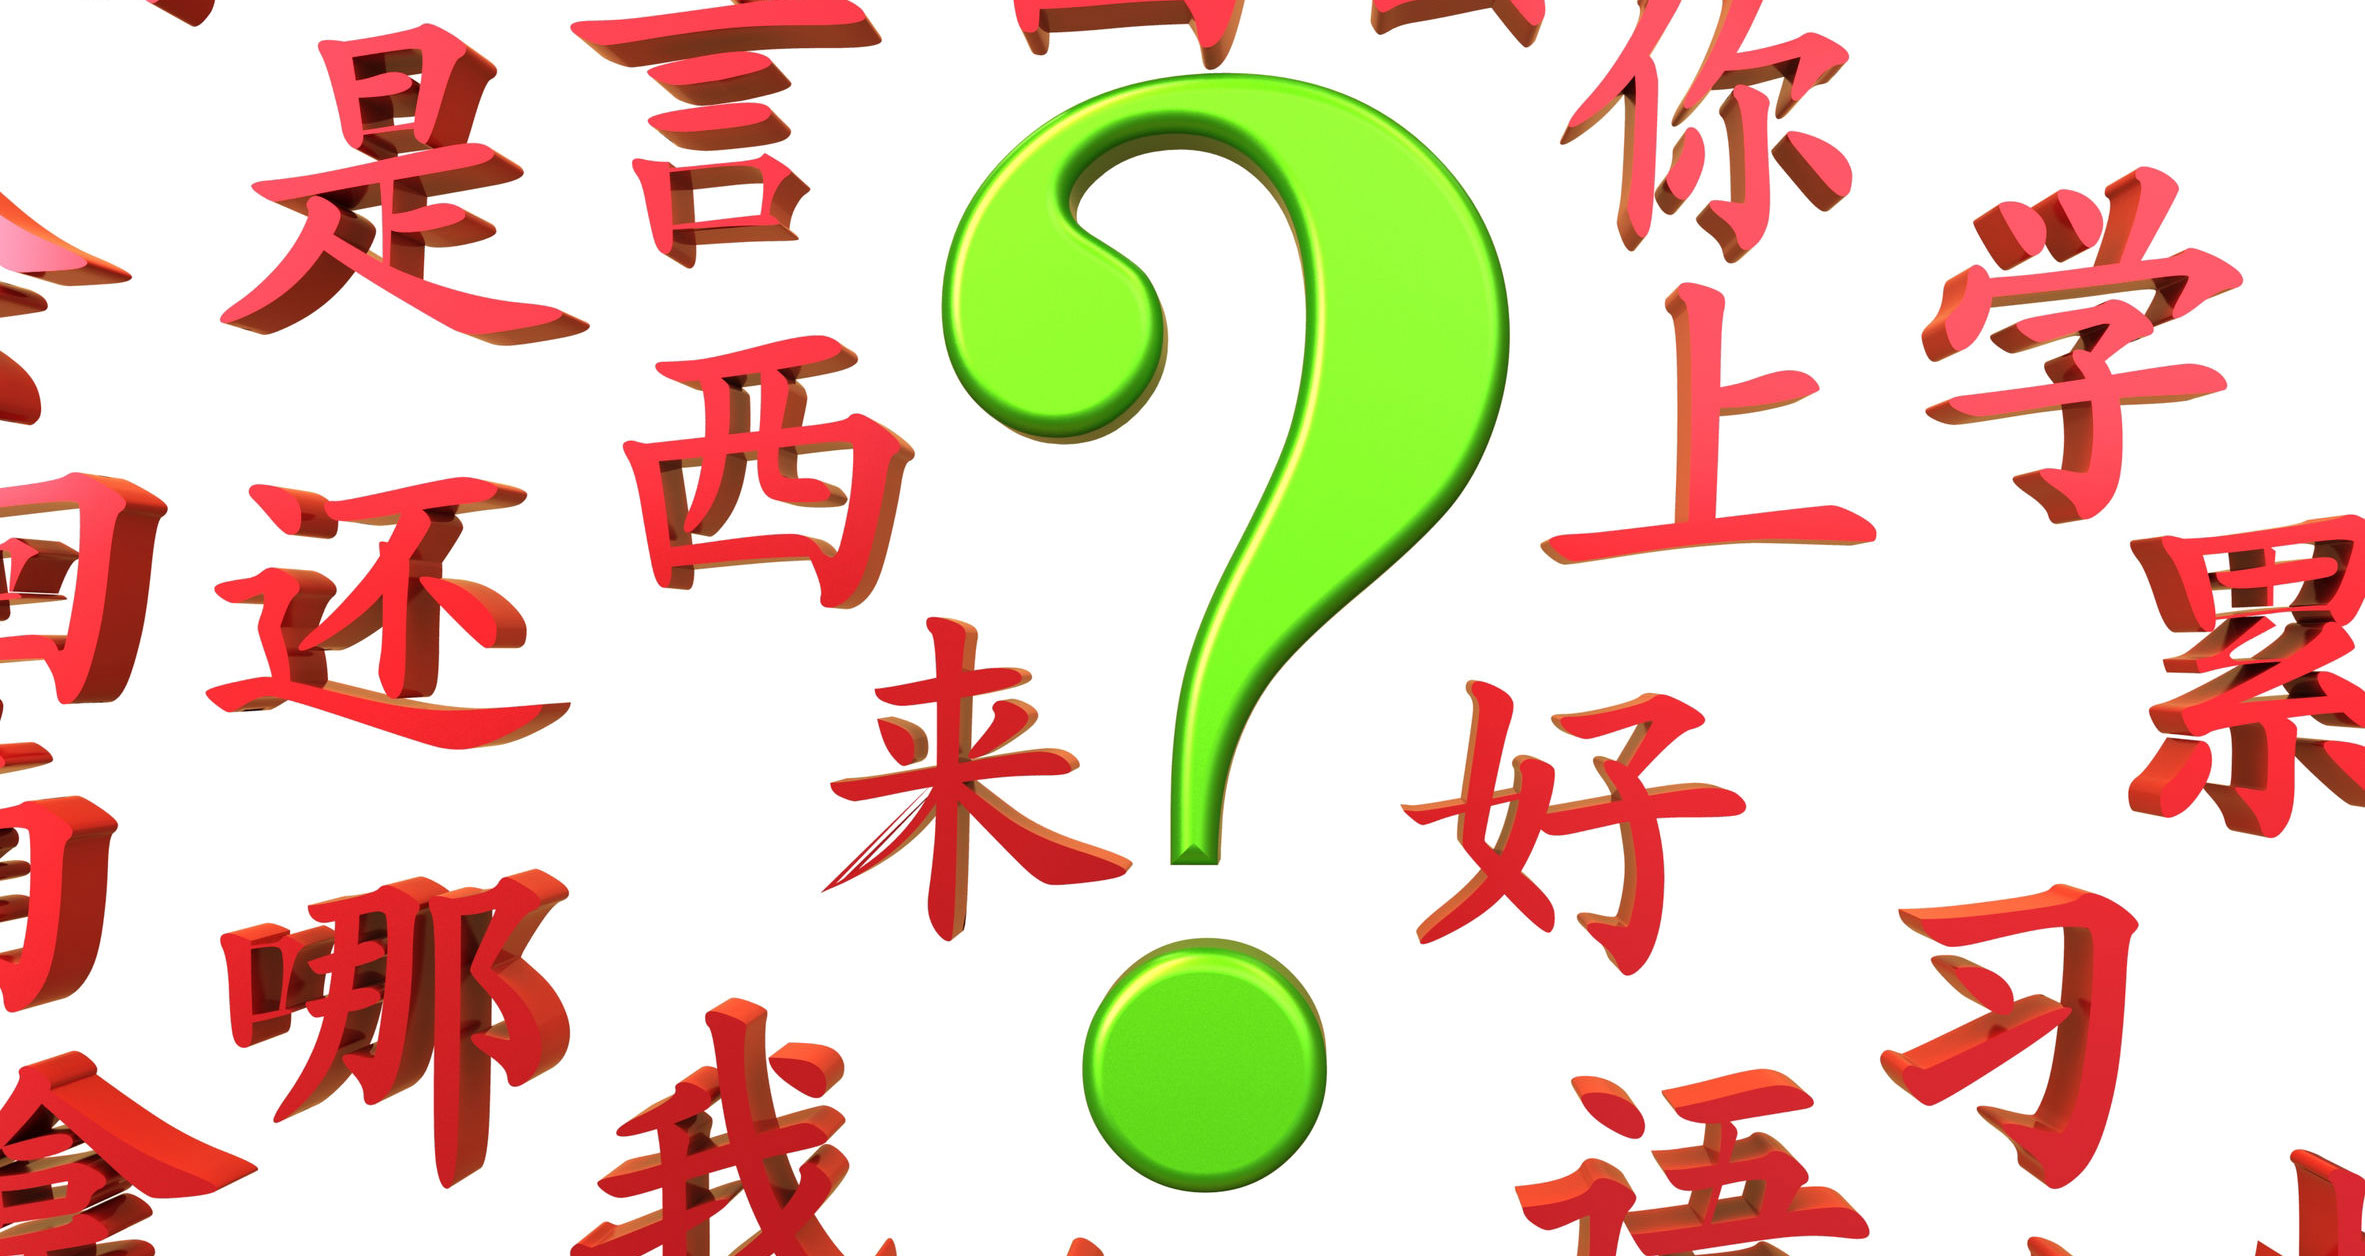 mandarin chinese characters around a green question mark